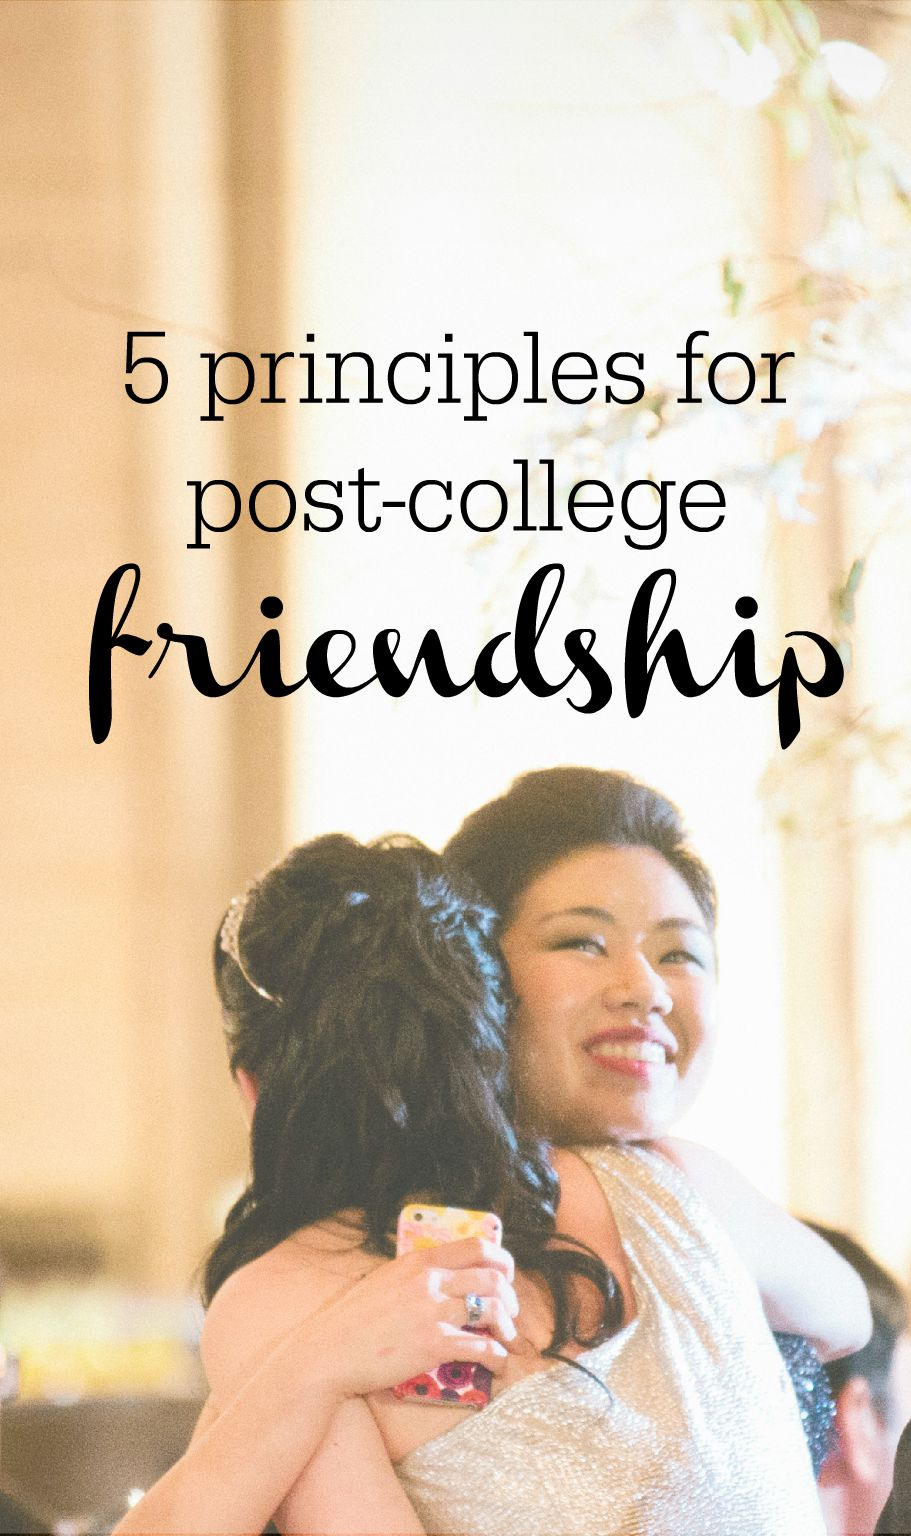 5 Principles for Post-College Friendship